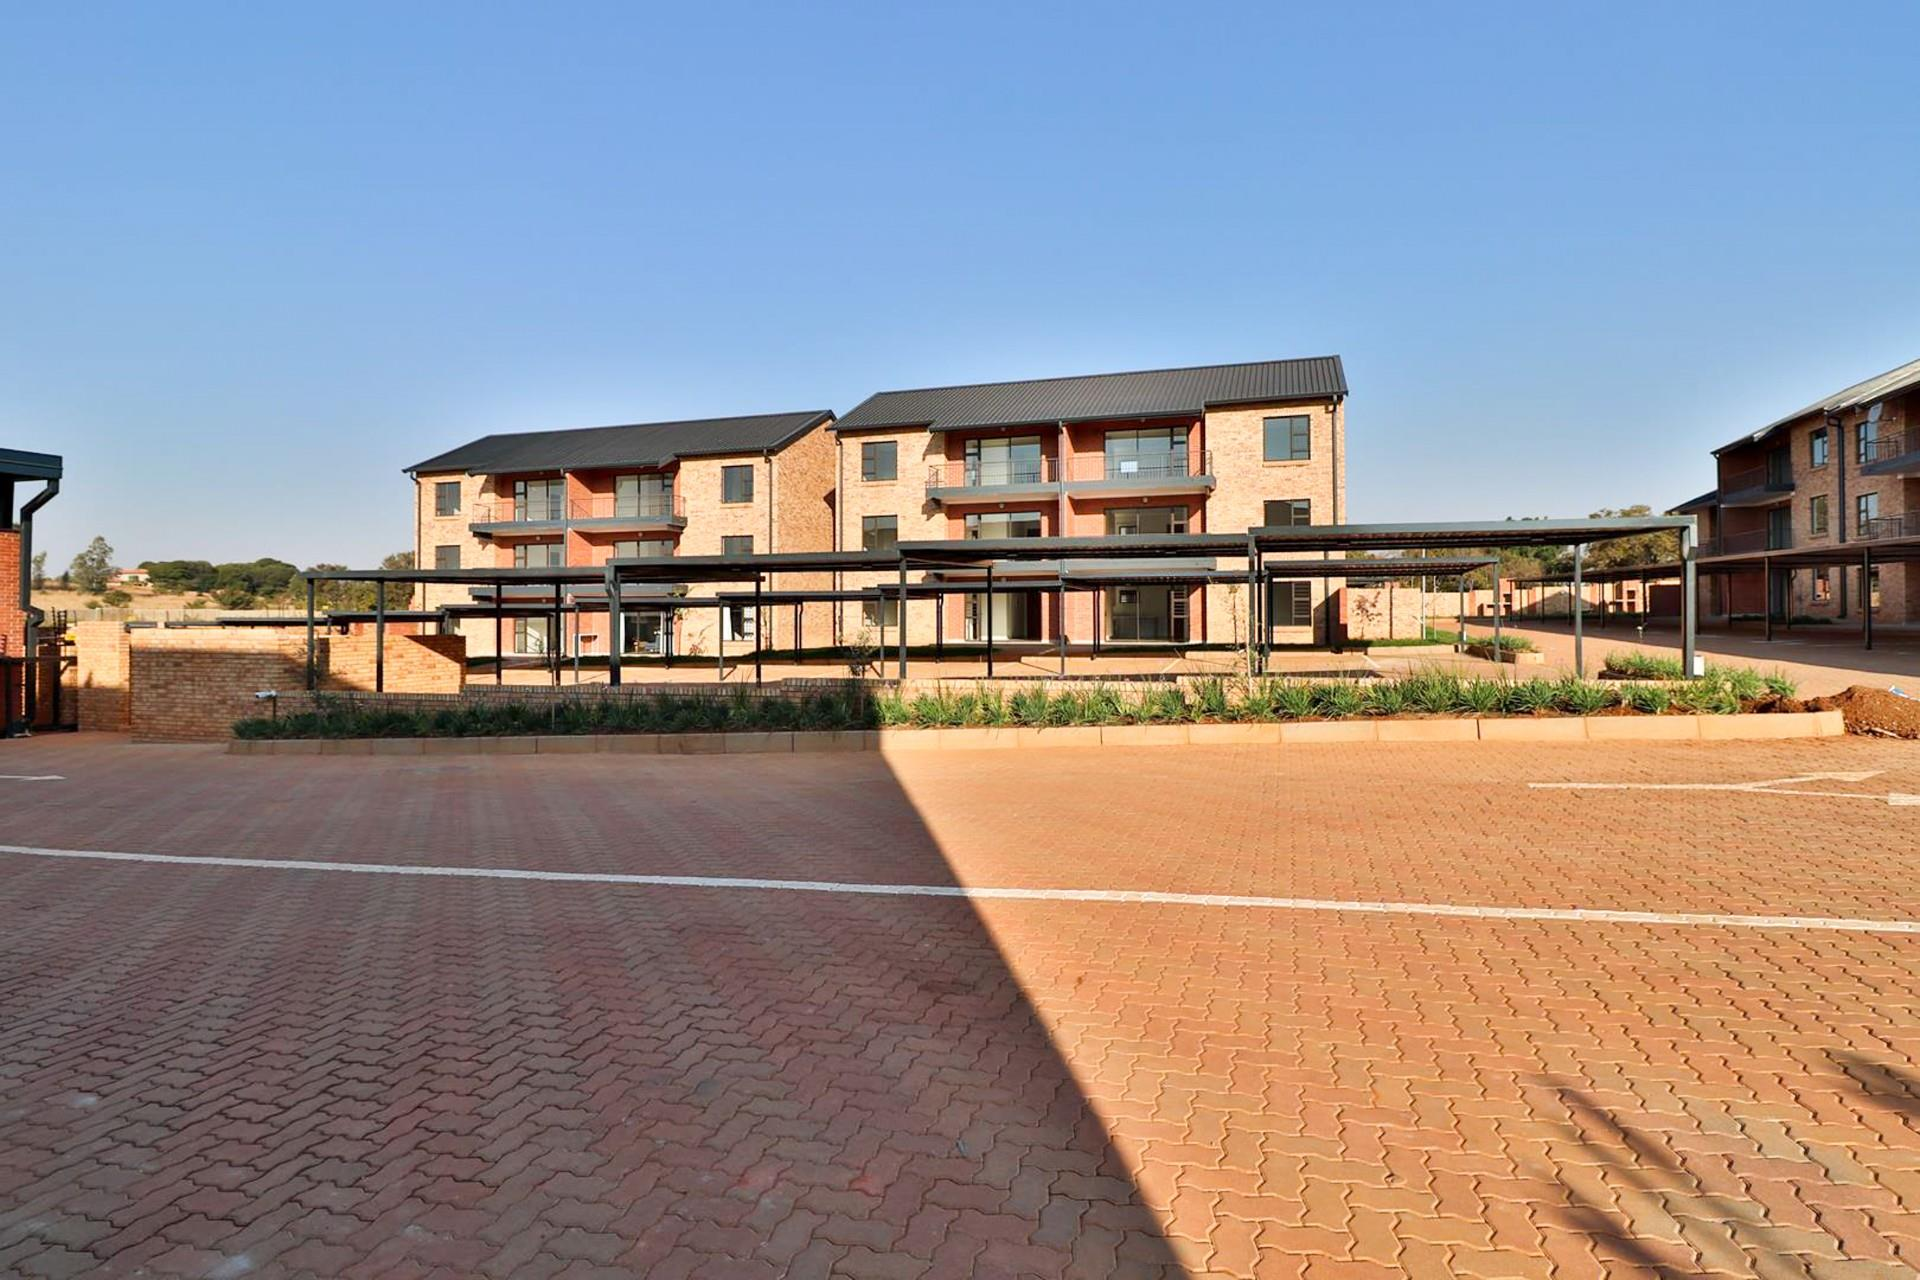 2 Bedroom Apartment / Flat To Rent in Olympus A H